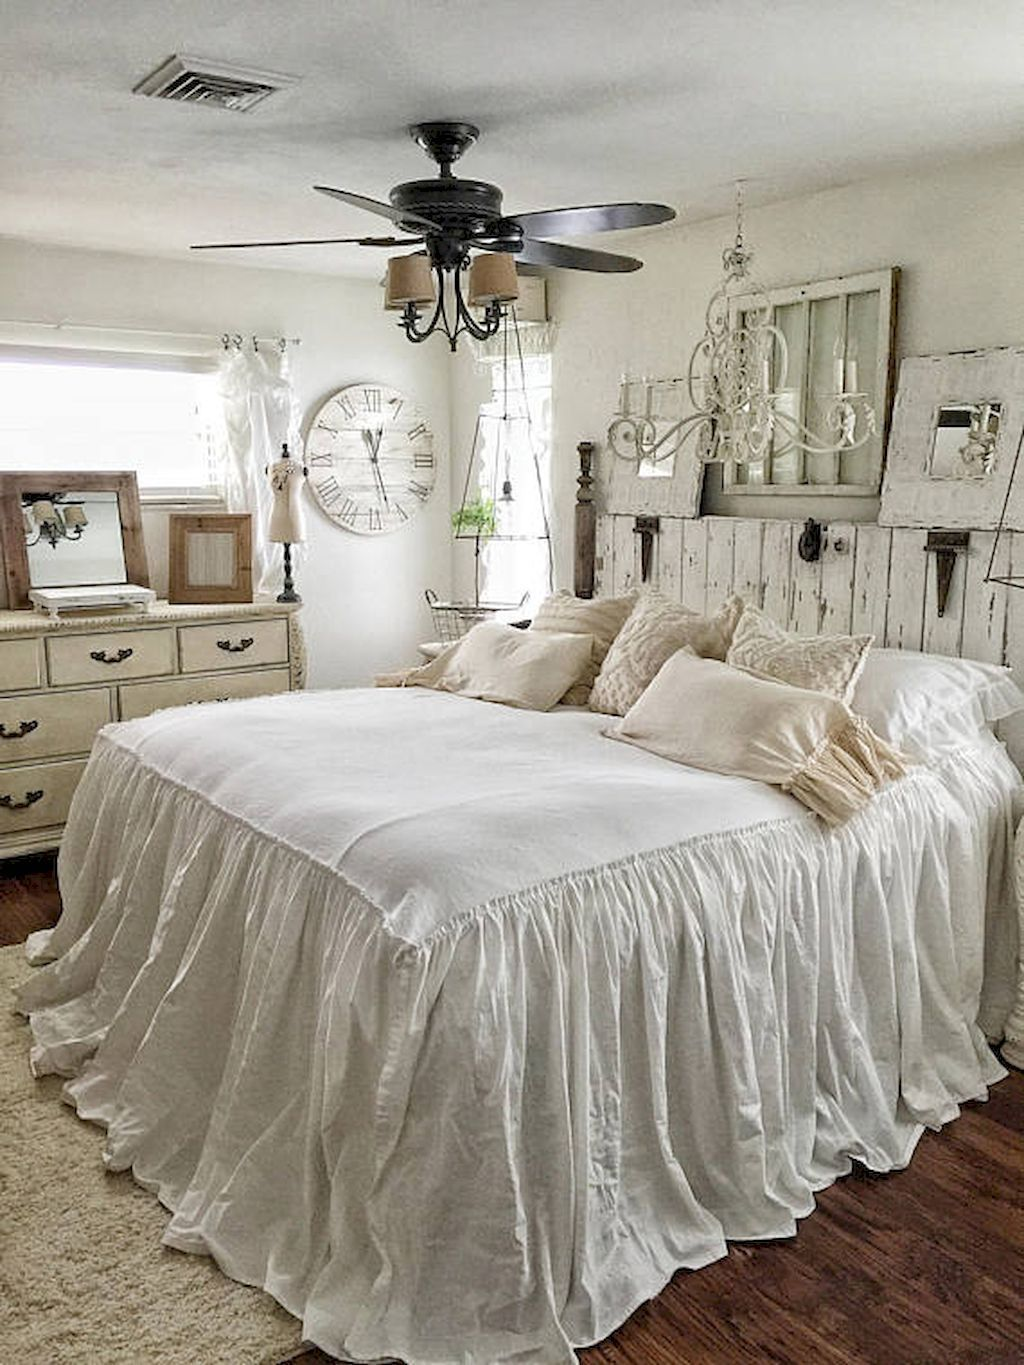 Cool 30 Romantic Shabby Chic Master Bedroom Ideas Colors Romantic Bedroom Chic Bedding Chic Bedroom Farmhouse Bedroom Decor